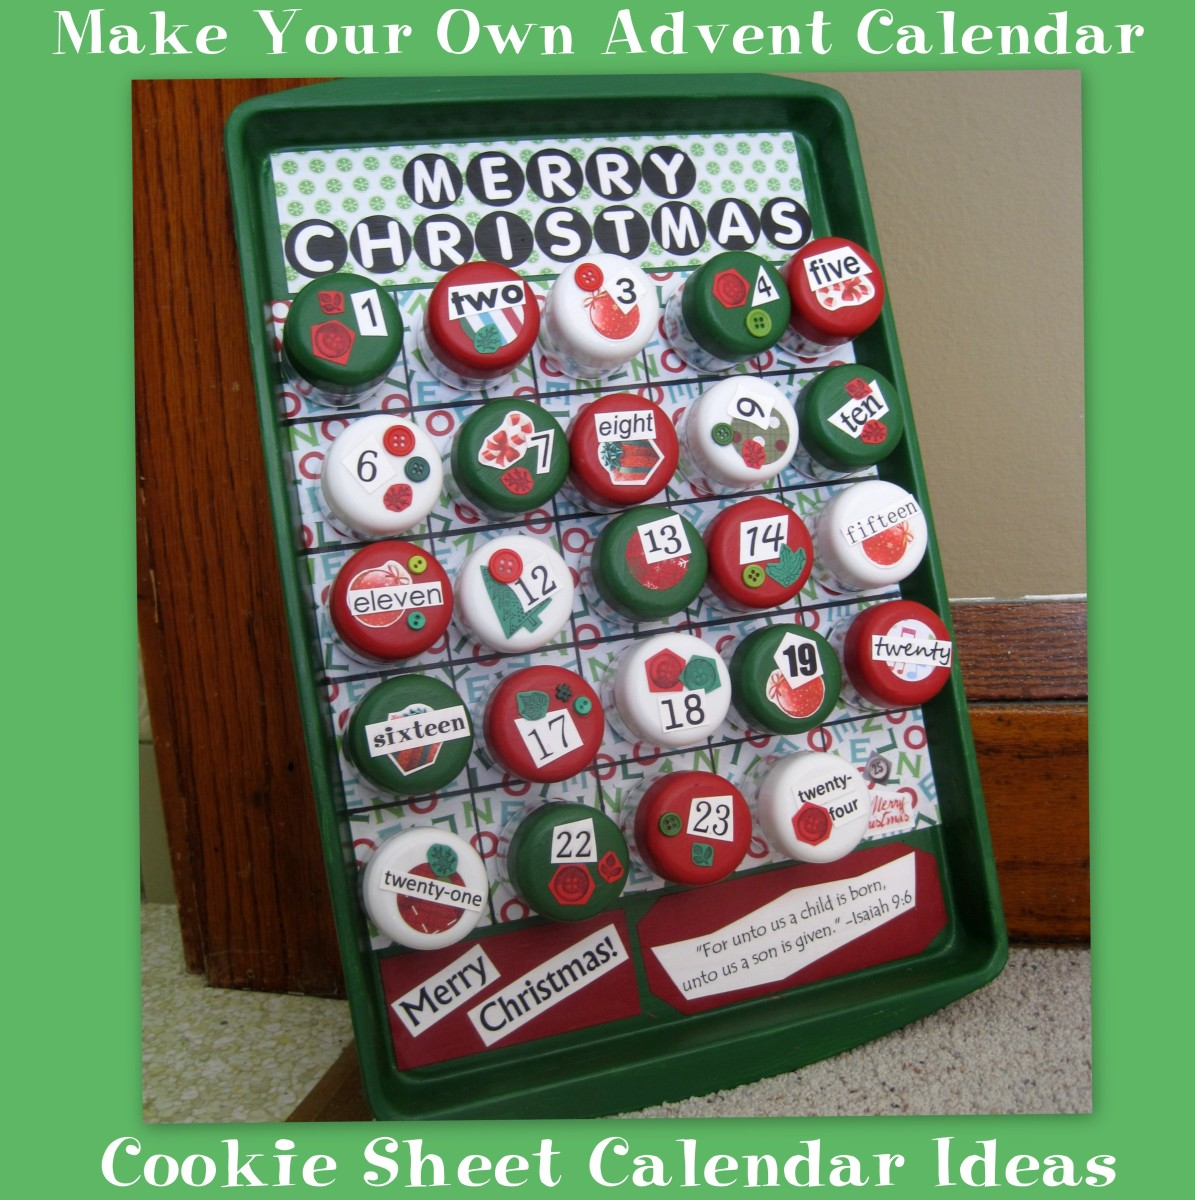 make your own advent calendar cookie sheet calendar ideas